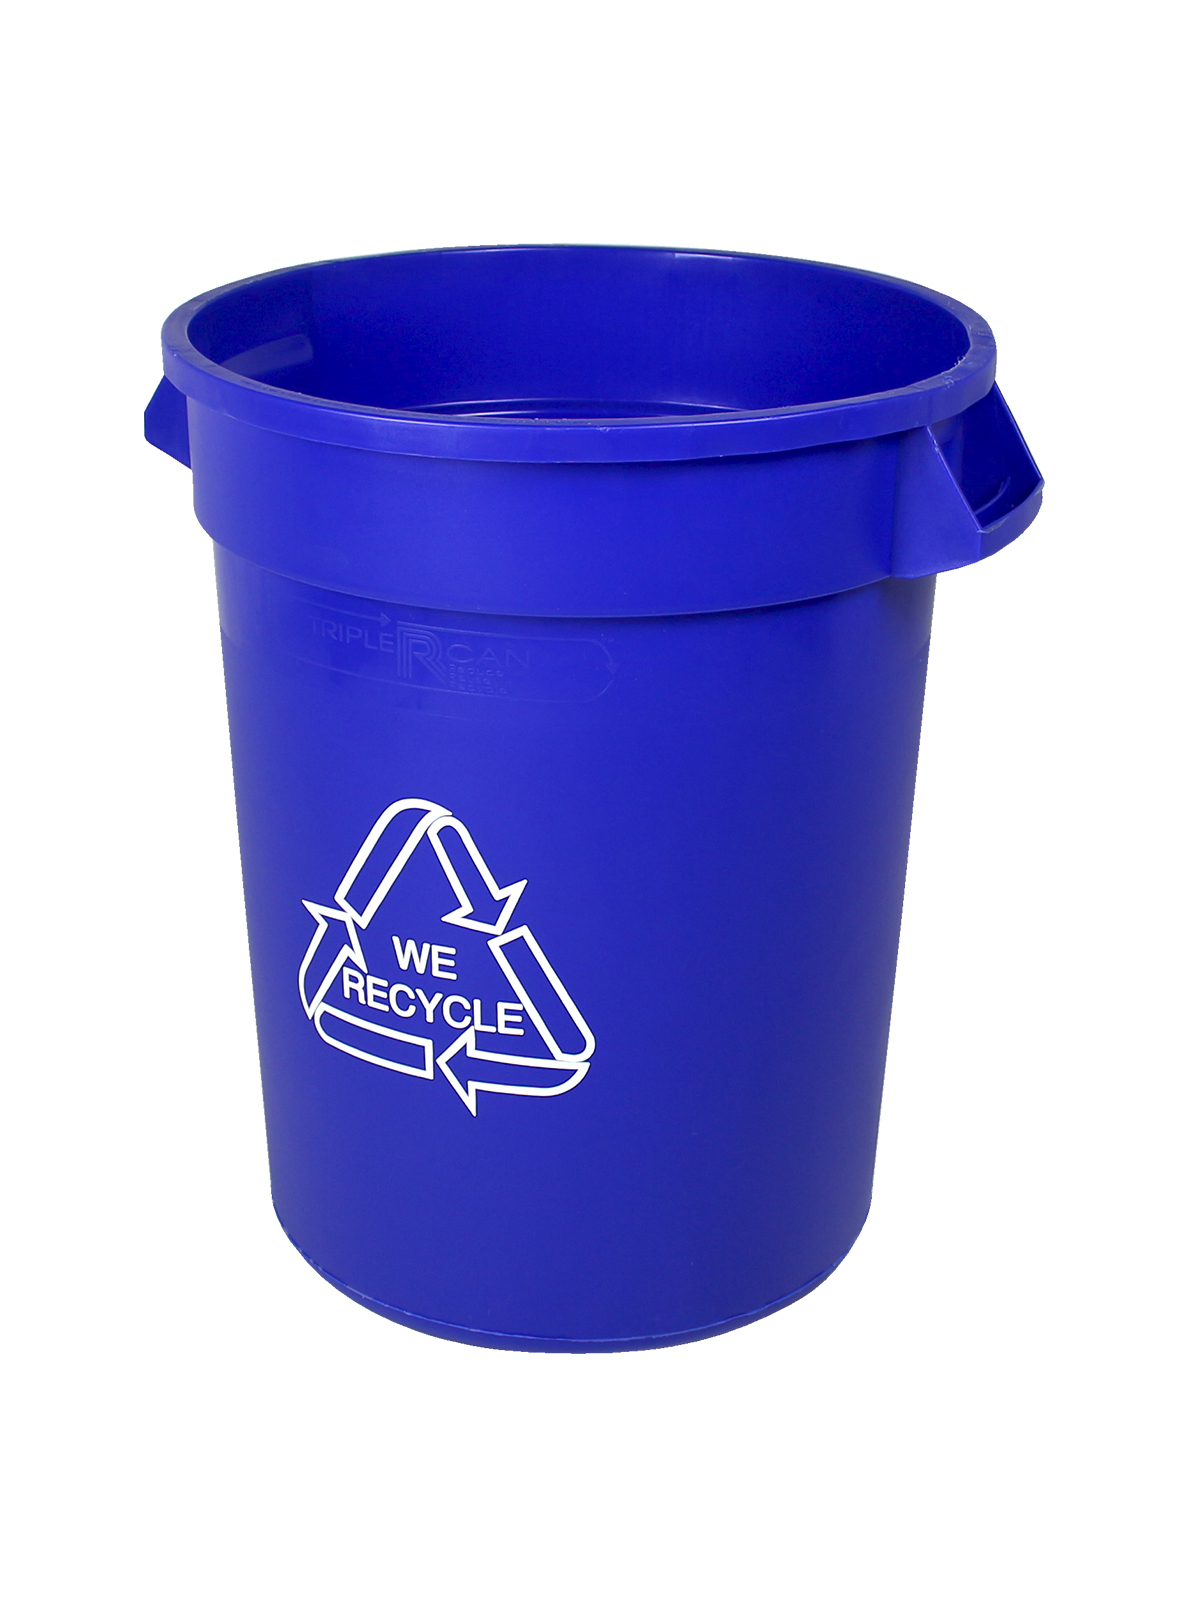 TRC - Body - We Recycle - Blue